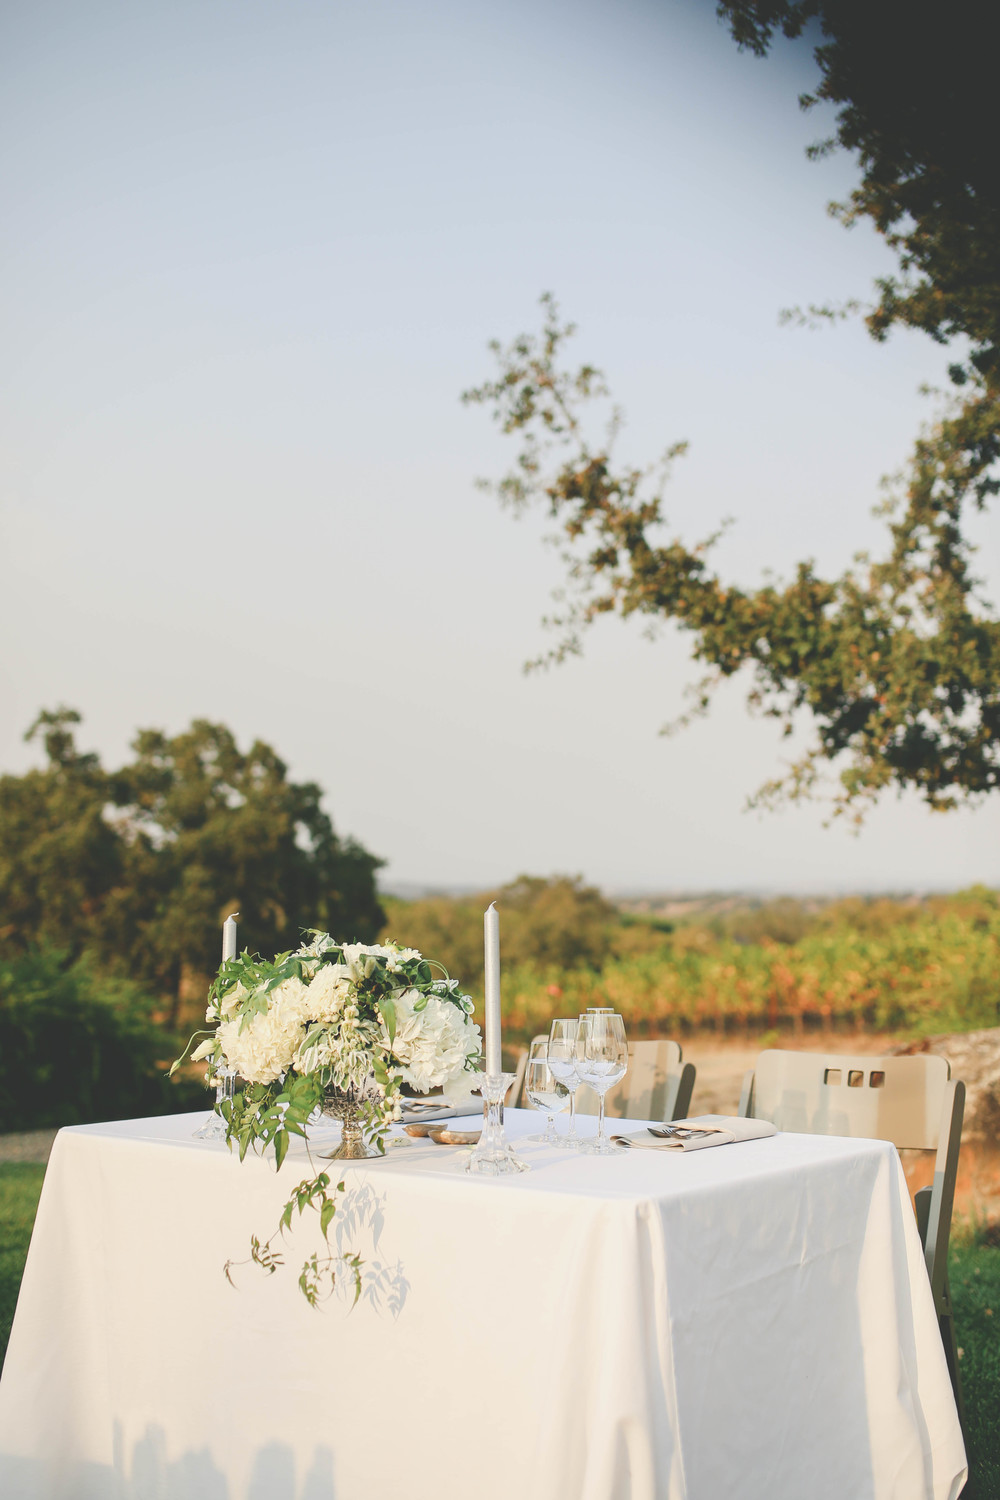 sonoma-county-healdsburg-wedding-photographer-table-arista-winery-4